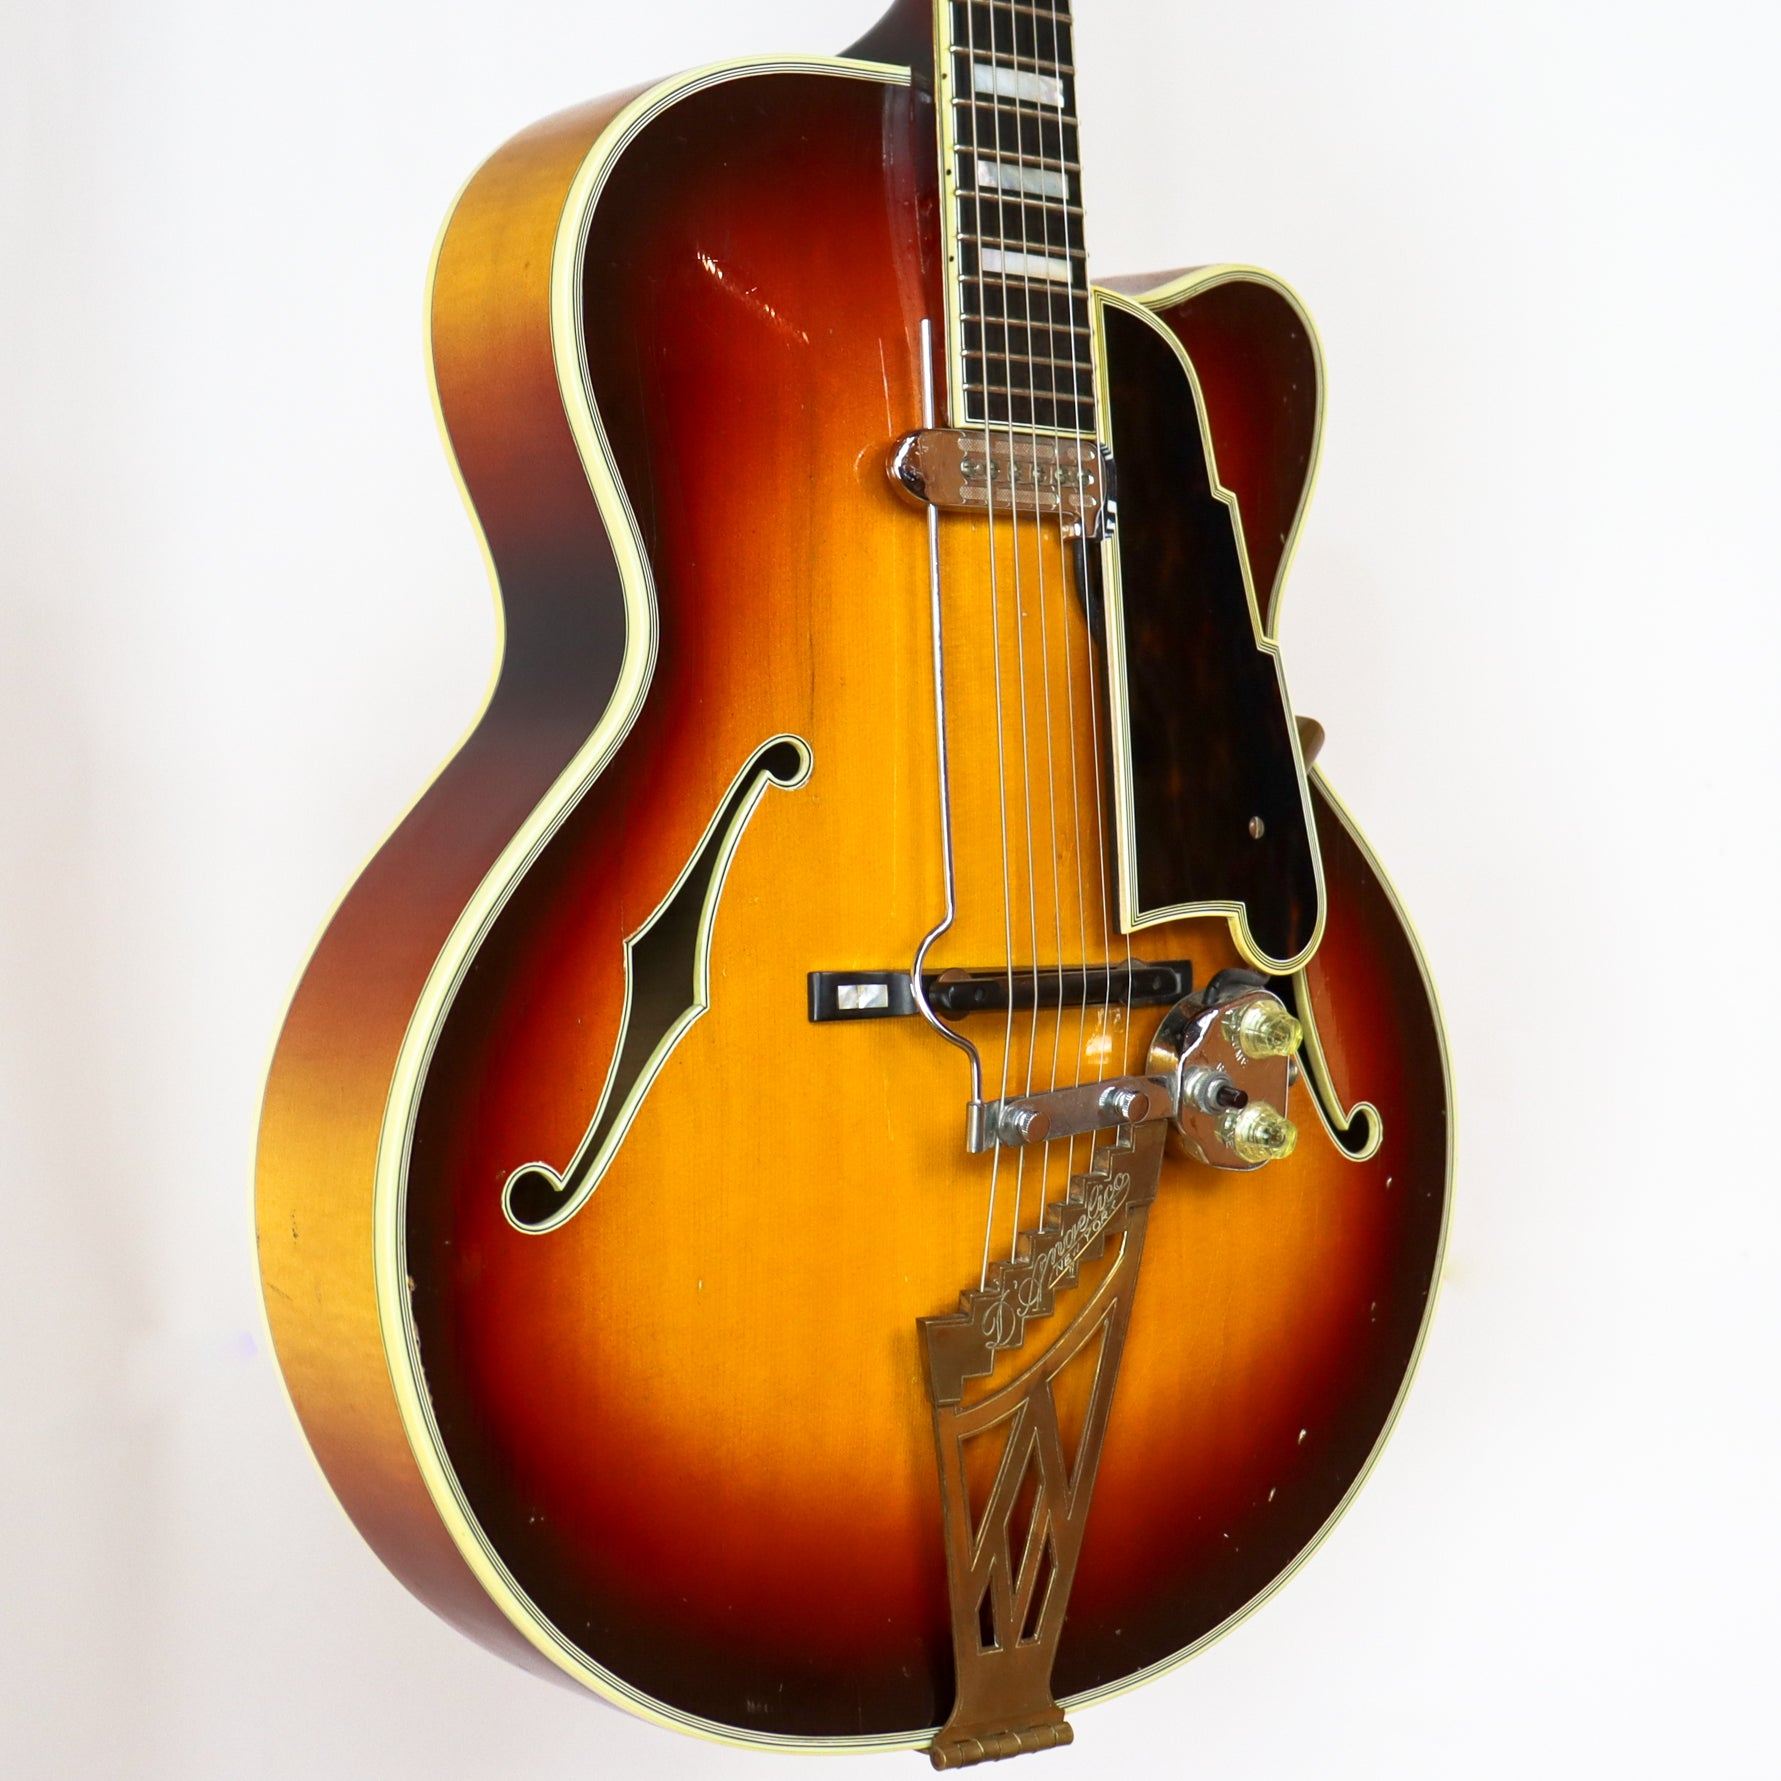 D'Angelico 1960 New Yorker Special SN# 2119 with Hardshell Case